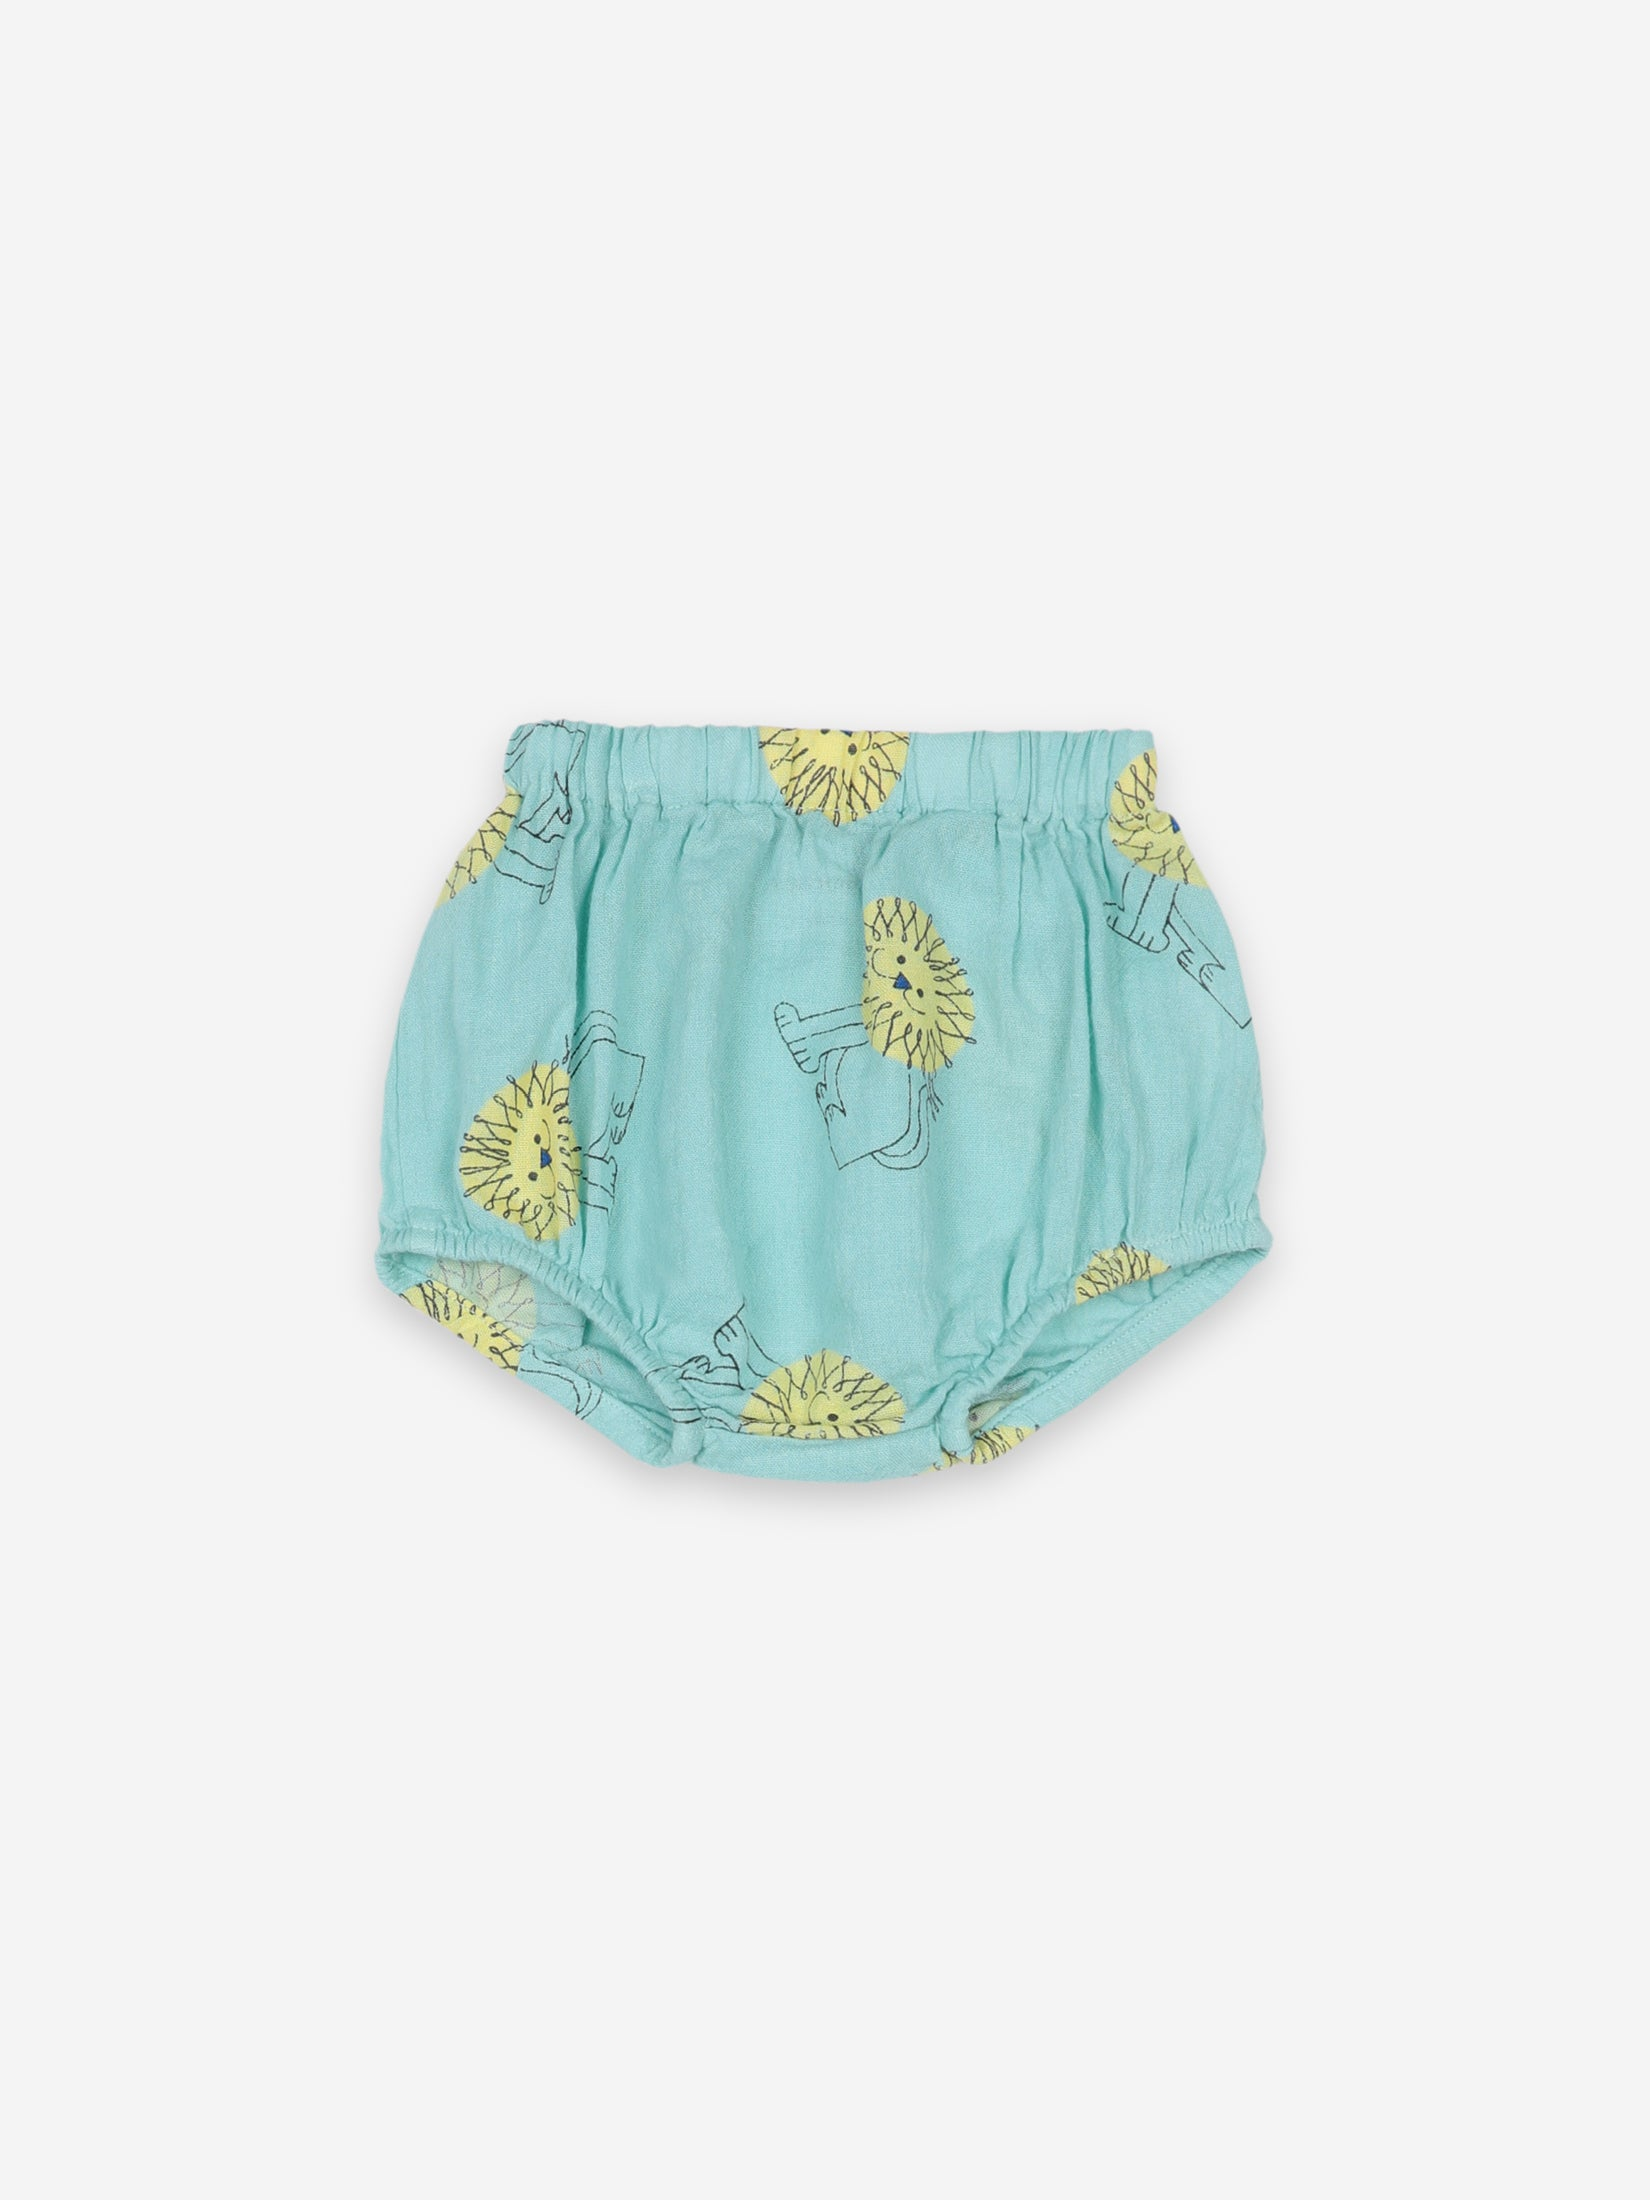 Bobo Choses Baby Pet a lion woven bloomers | Sweet Threads